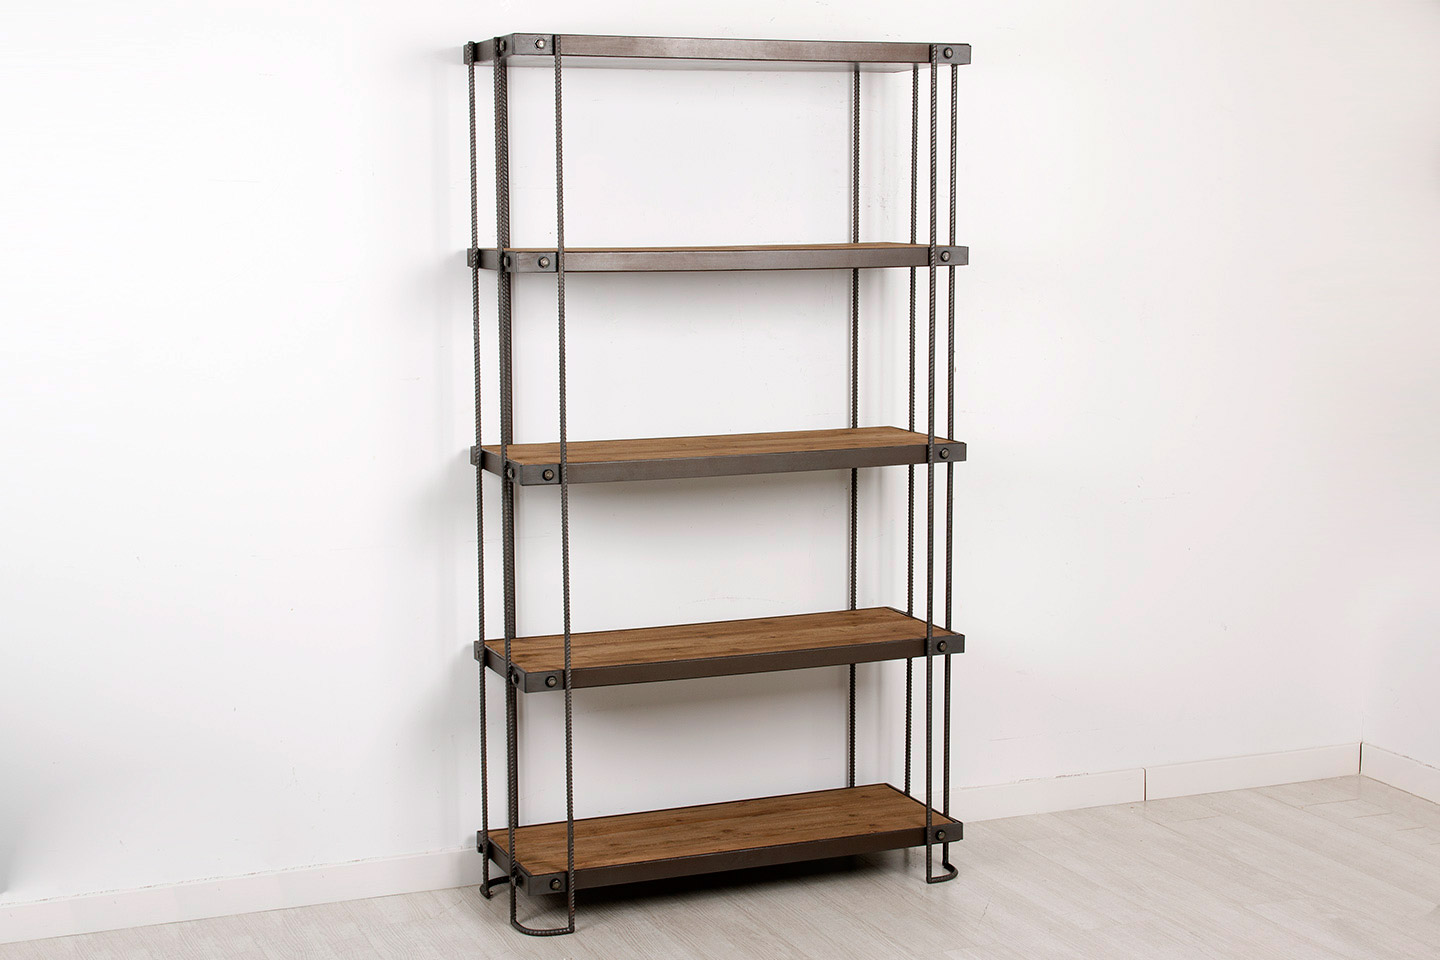 Librer a industrial loft new york no disponible en for Muebles industrial loft